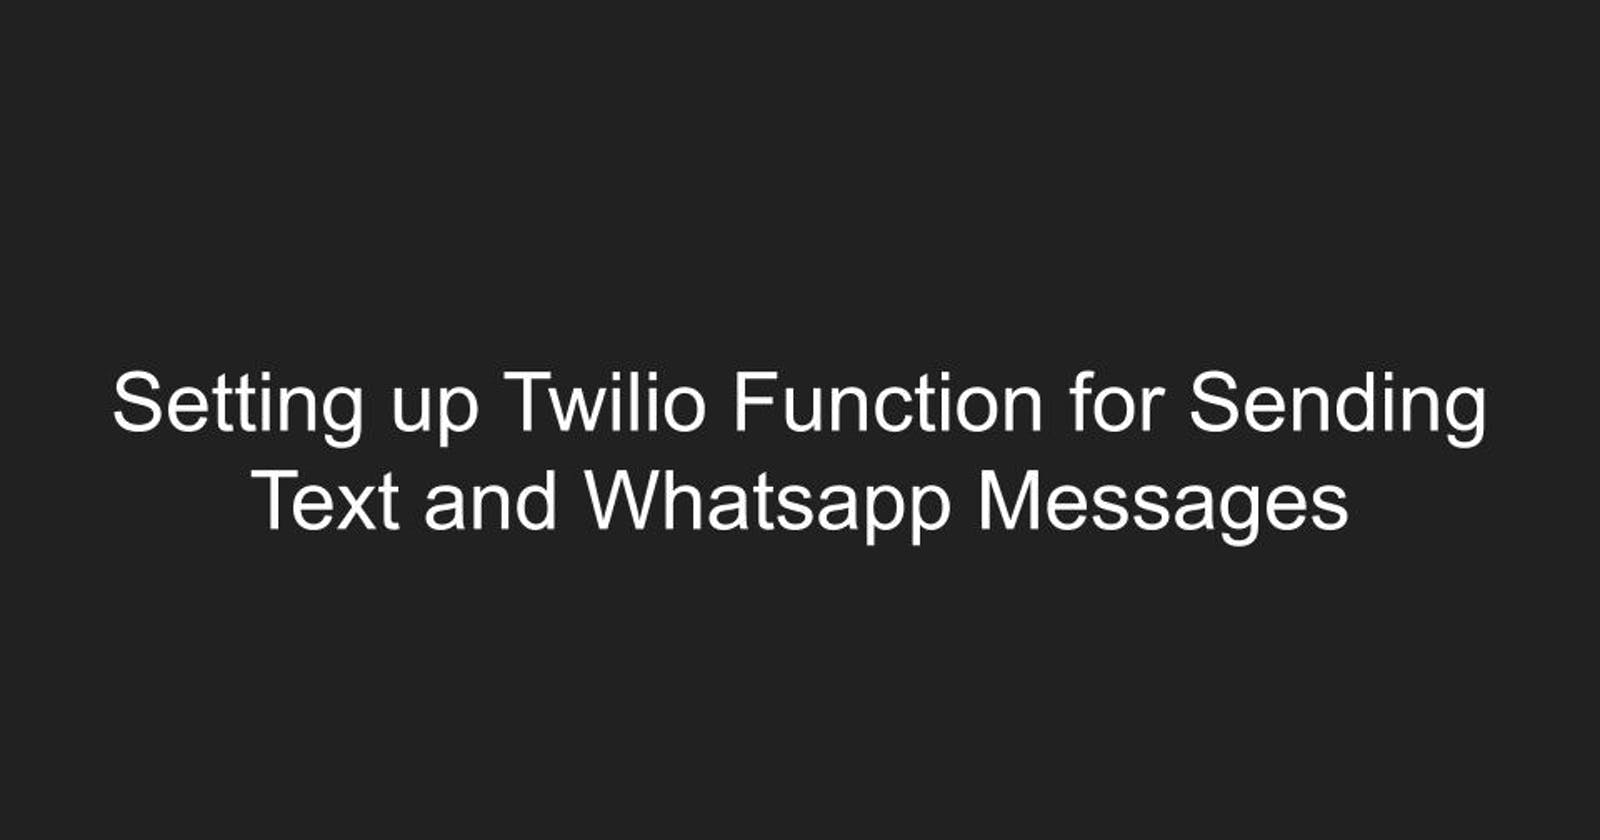 Setting up Twilio Function for Sending Text and Whatsapp Messages